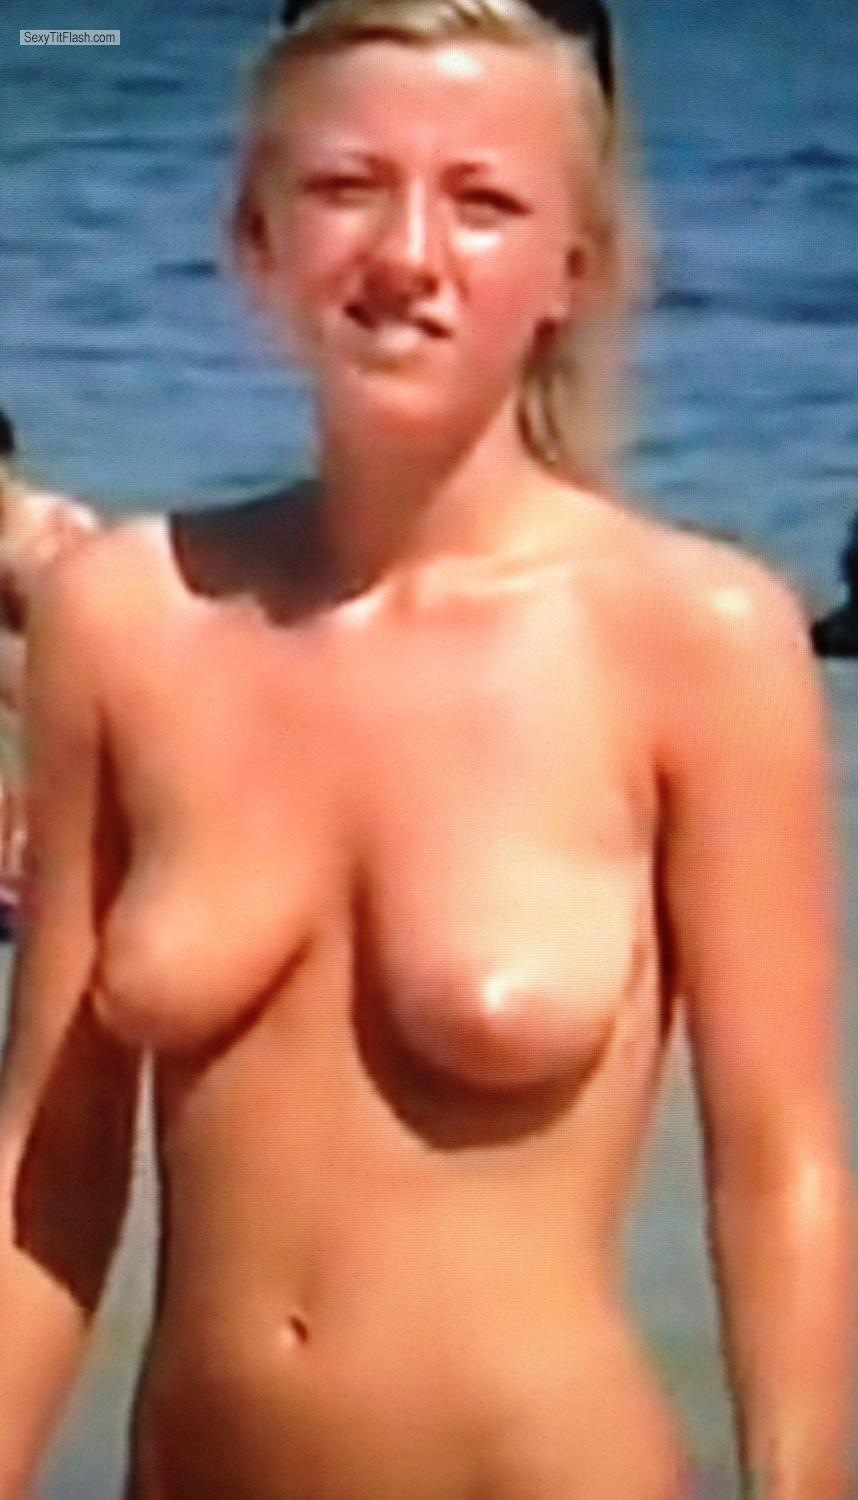 Tit Flash: Small Tits By IPhone - Topless Trisha from United States